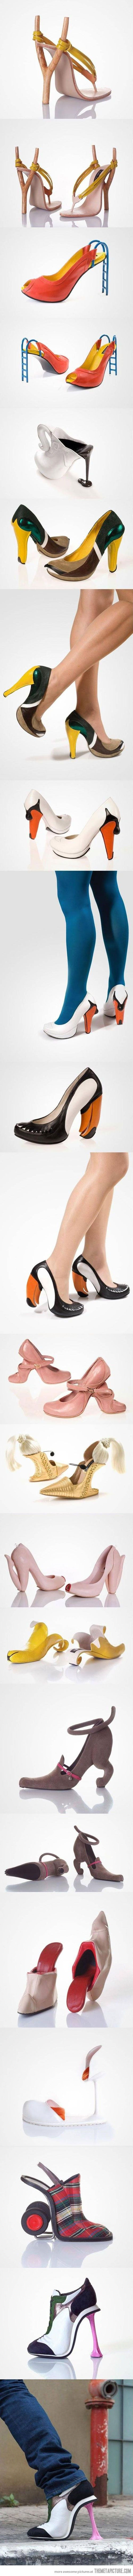 whimsical / bizarre High Heels!: Heels Design, Creative High, Crazy Shoes, Funny Shoes, Funky Shoes, Shoes Design, Weird Shoes, High Heels, Creative Shoes